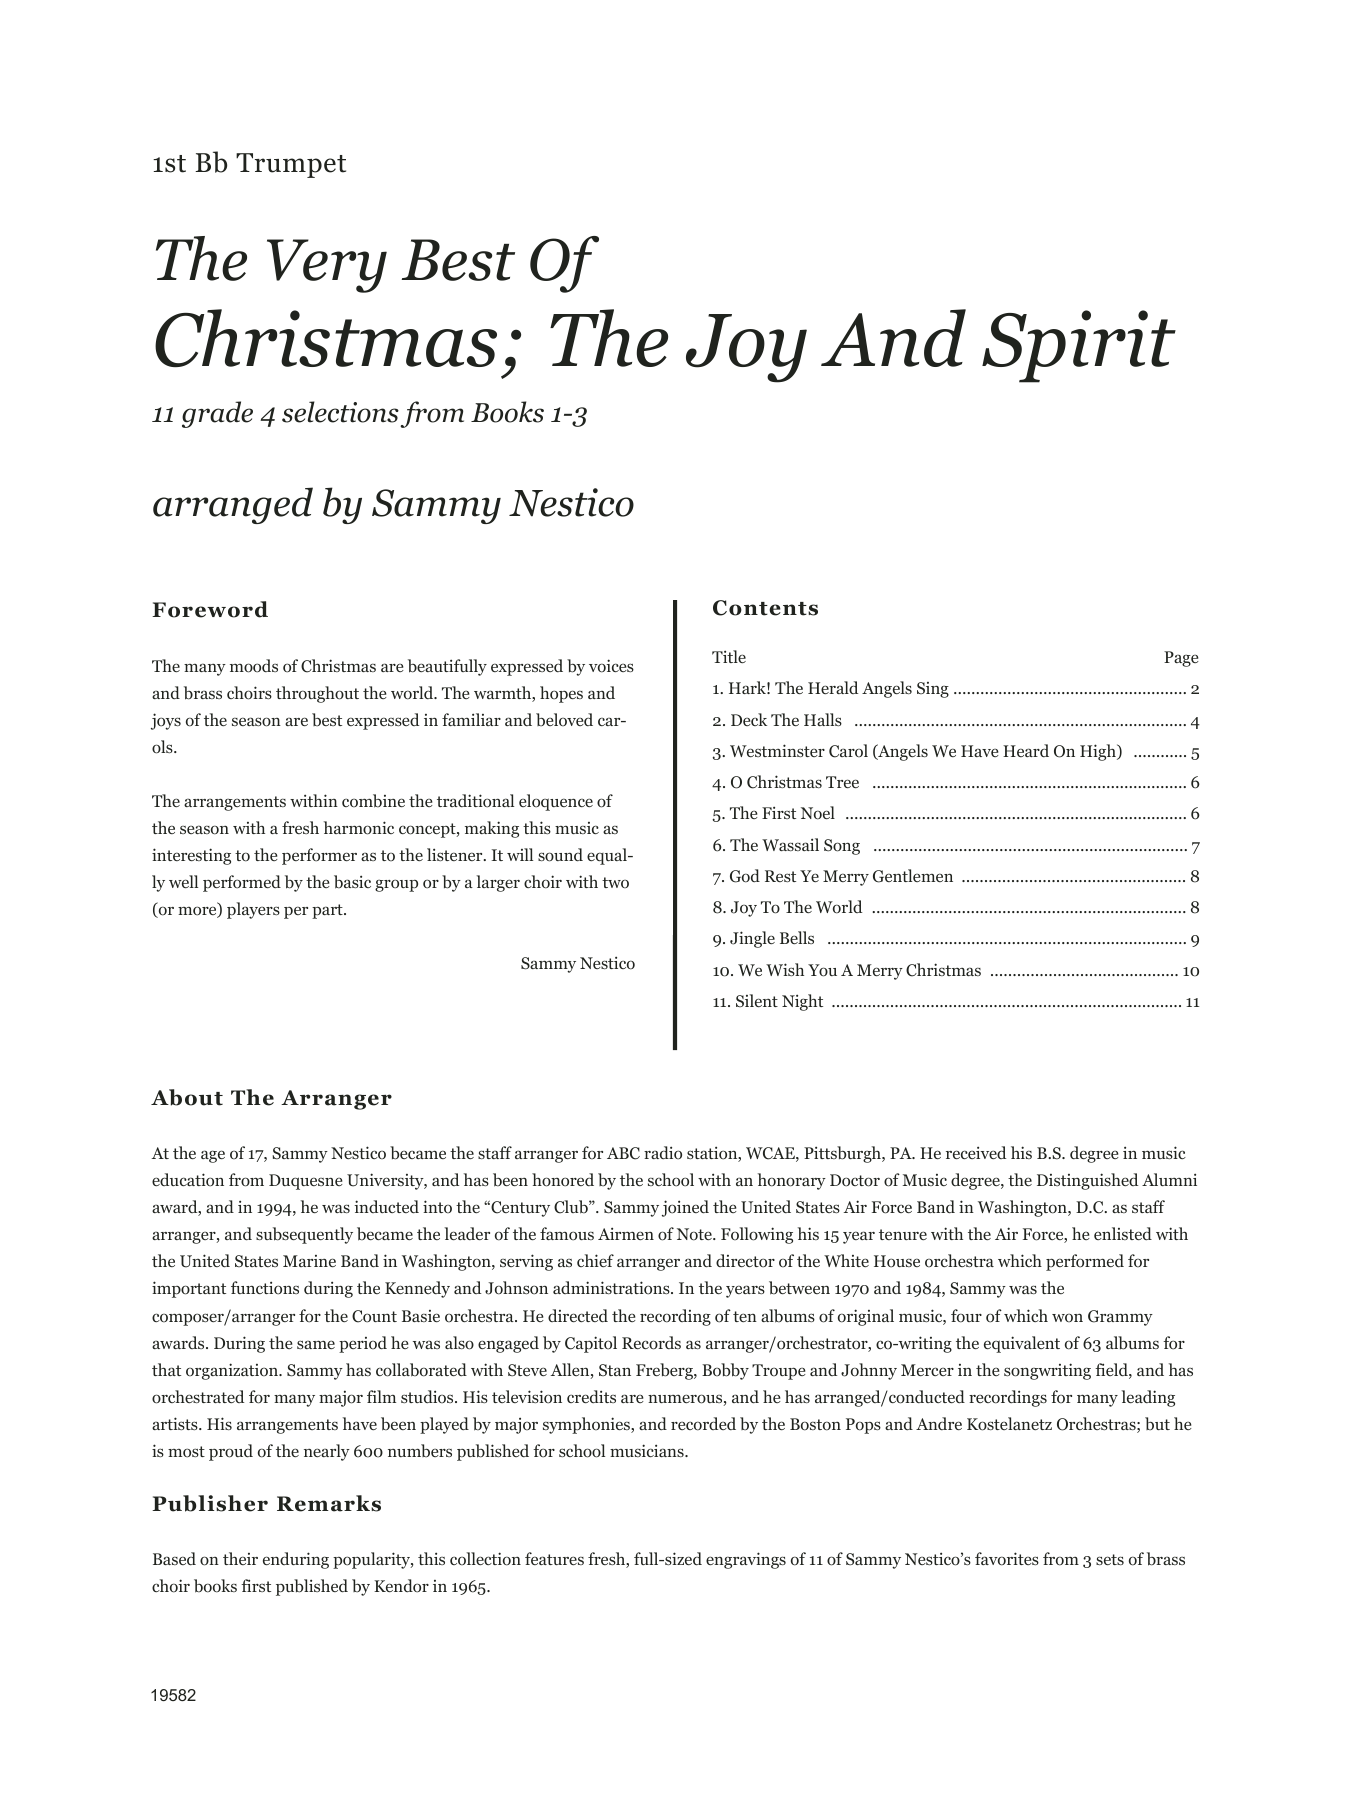 Very Best Of Christmas; The Joy And Spirit (Books 1-3) - 1st Bb Trumpet Sheet Music